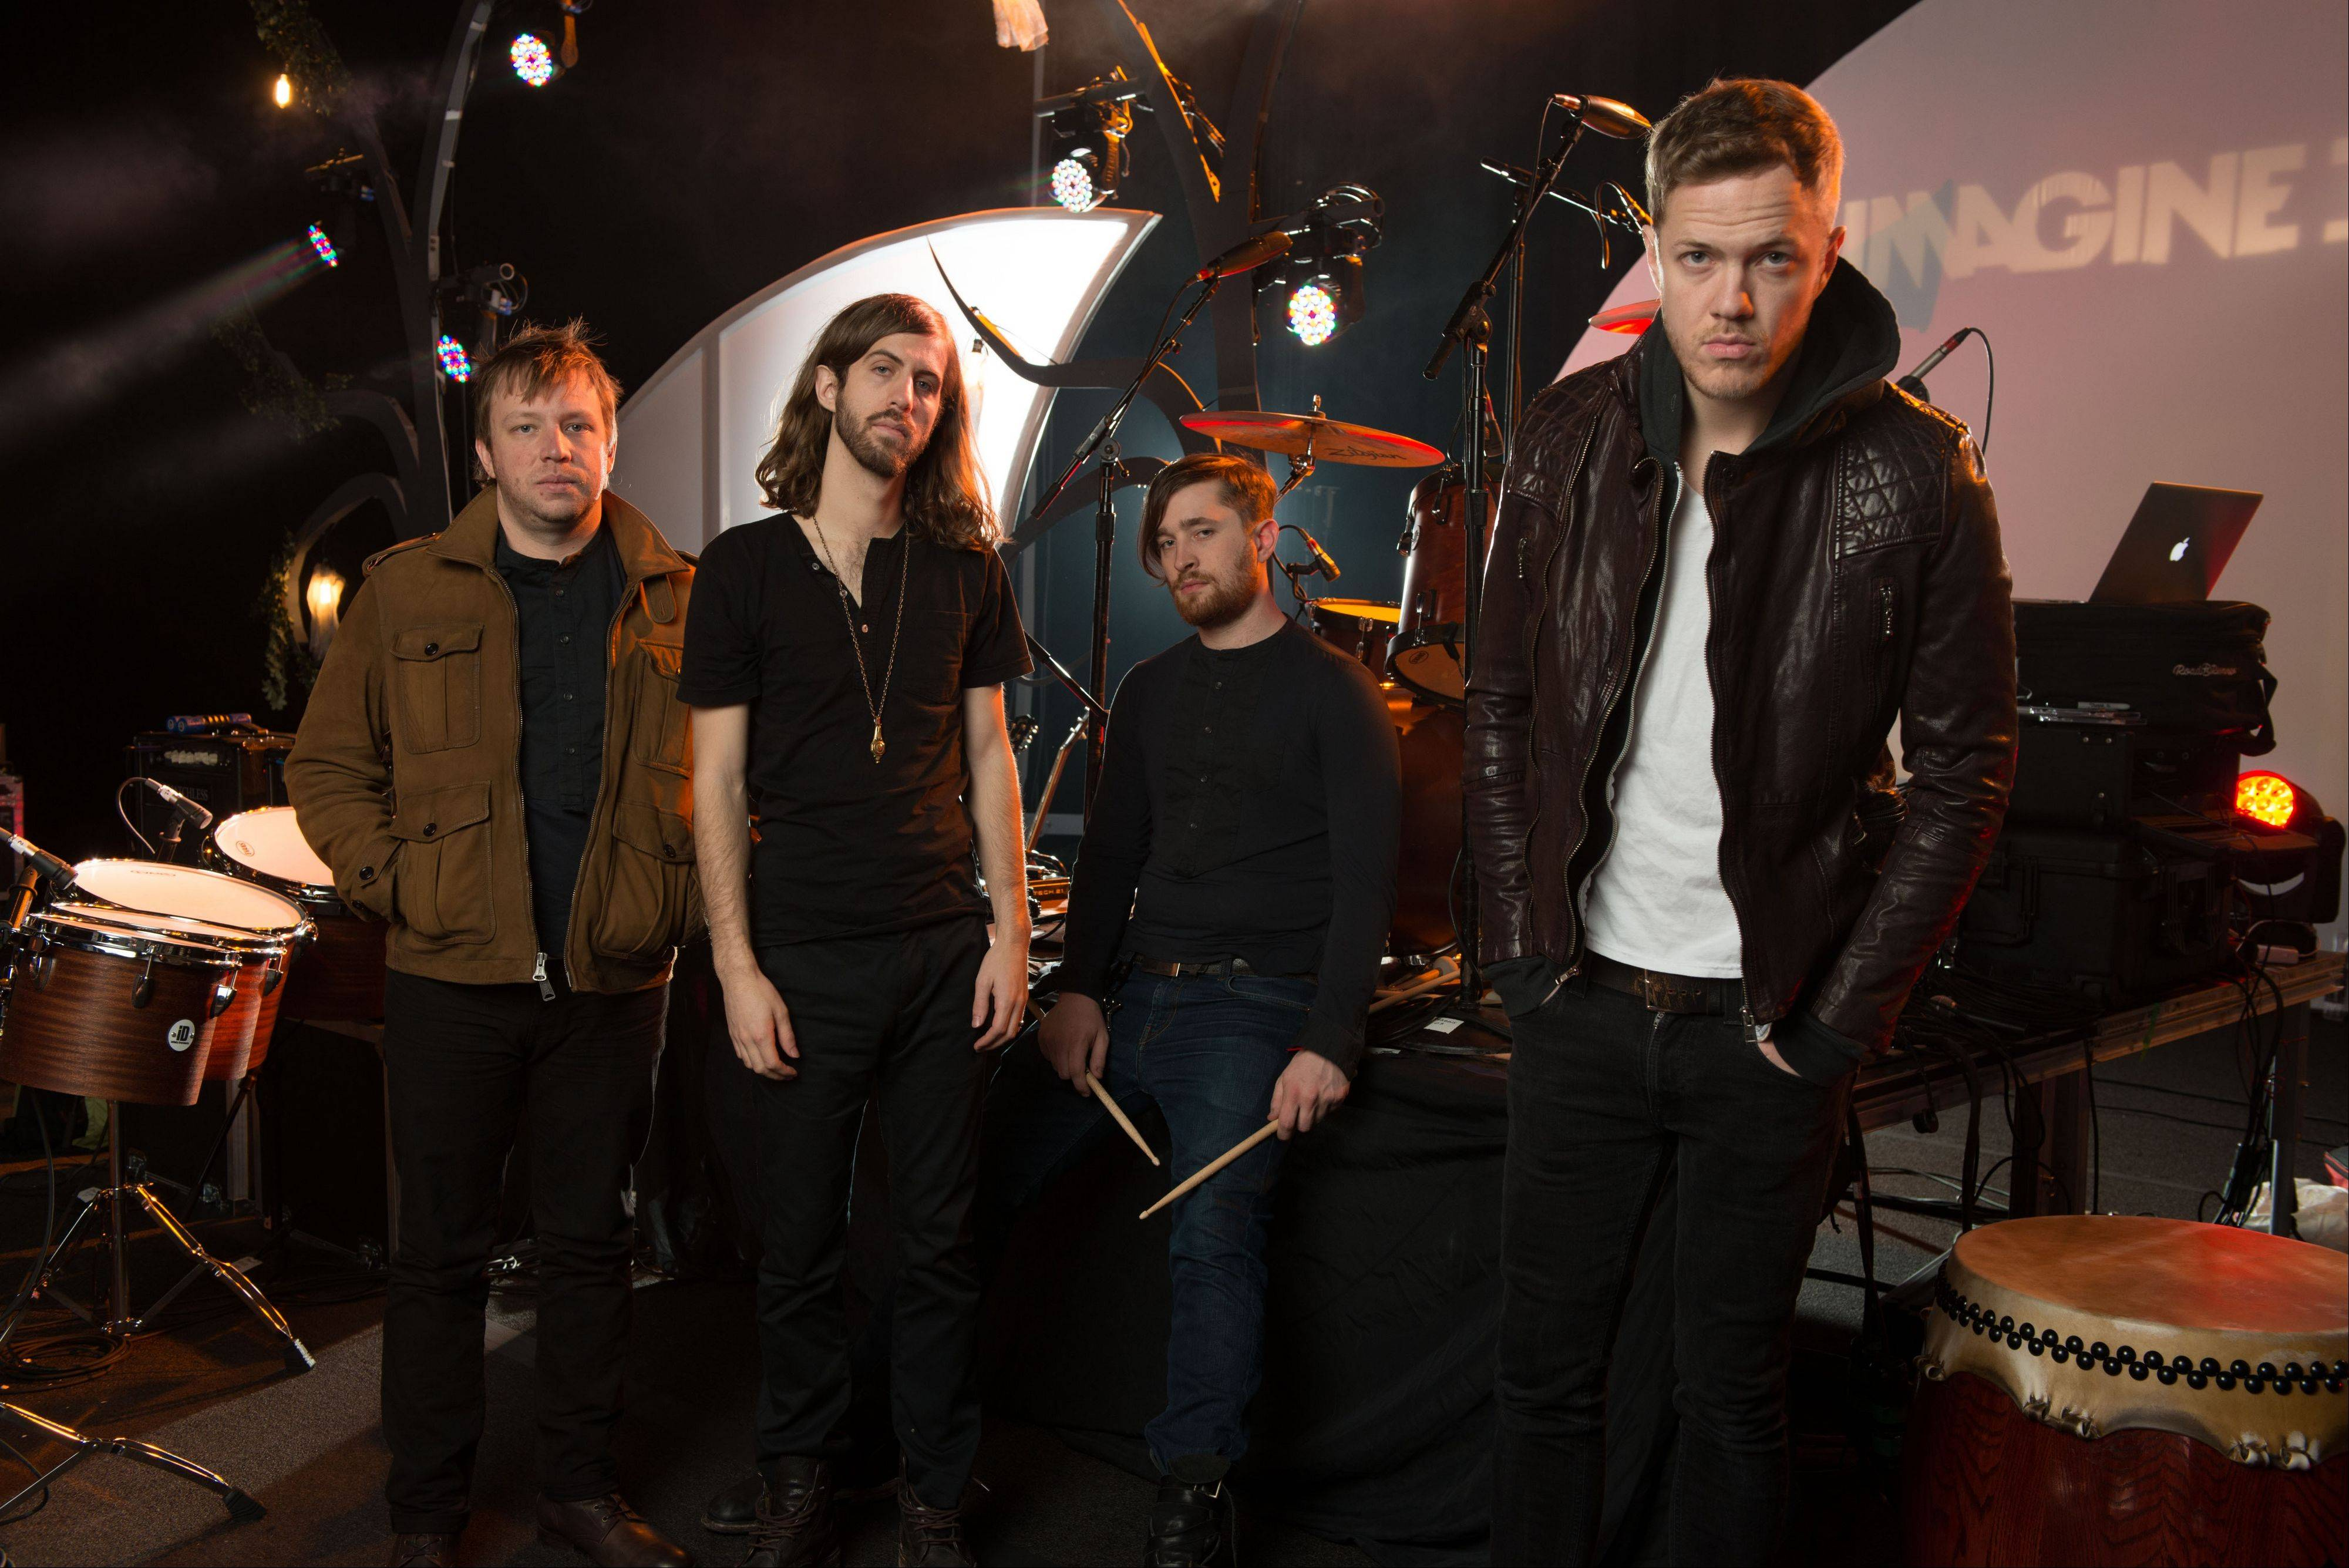 Imagine Dragons brings its tour to the Allstate Arena on March 13.